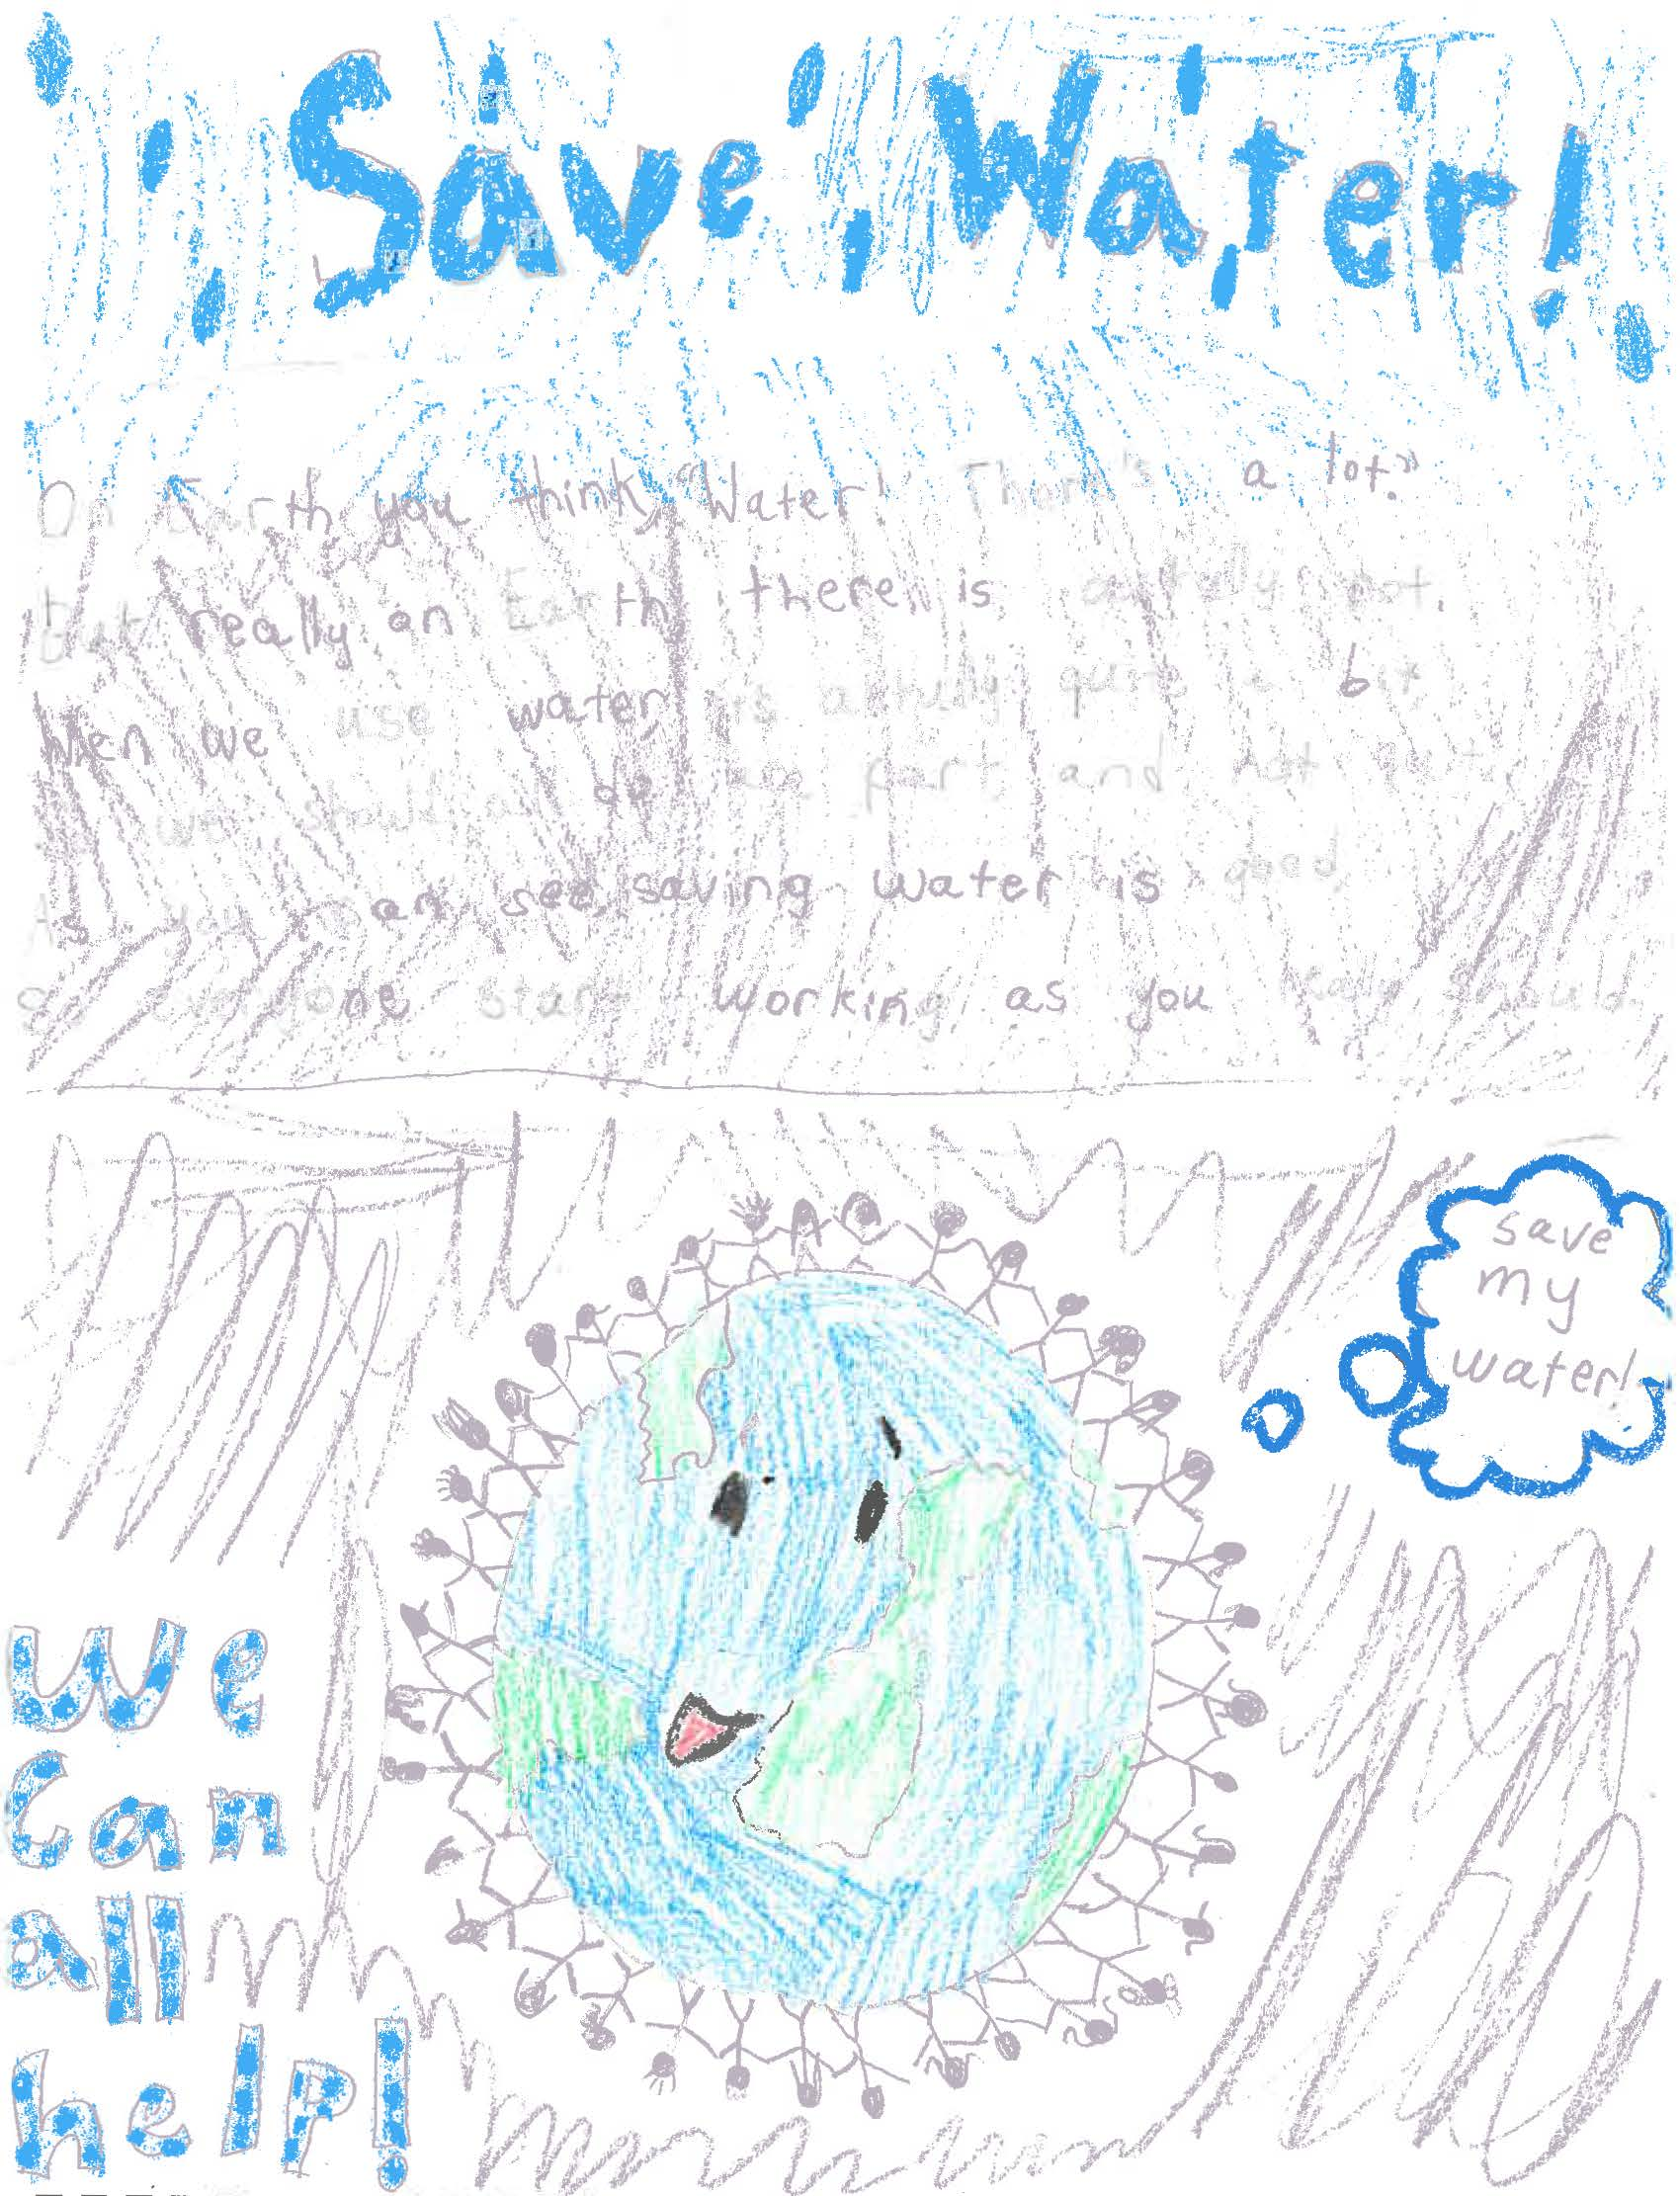 Oldsmar Drop Savers poster contest Division 2 poster winner